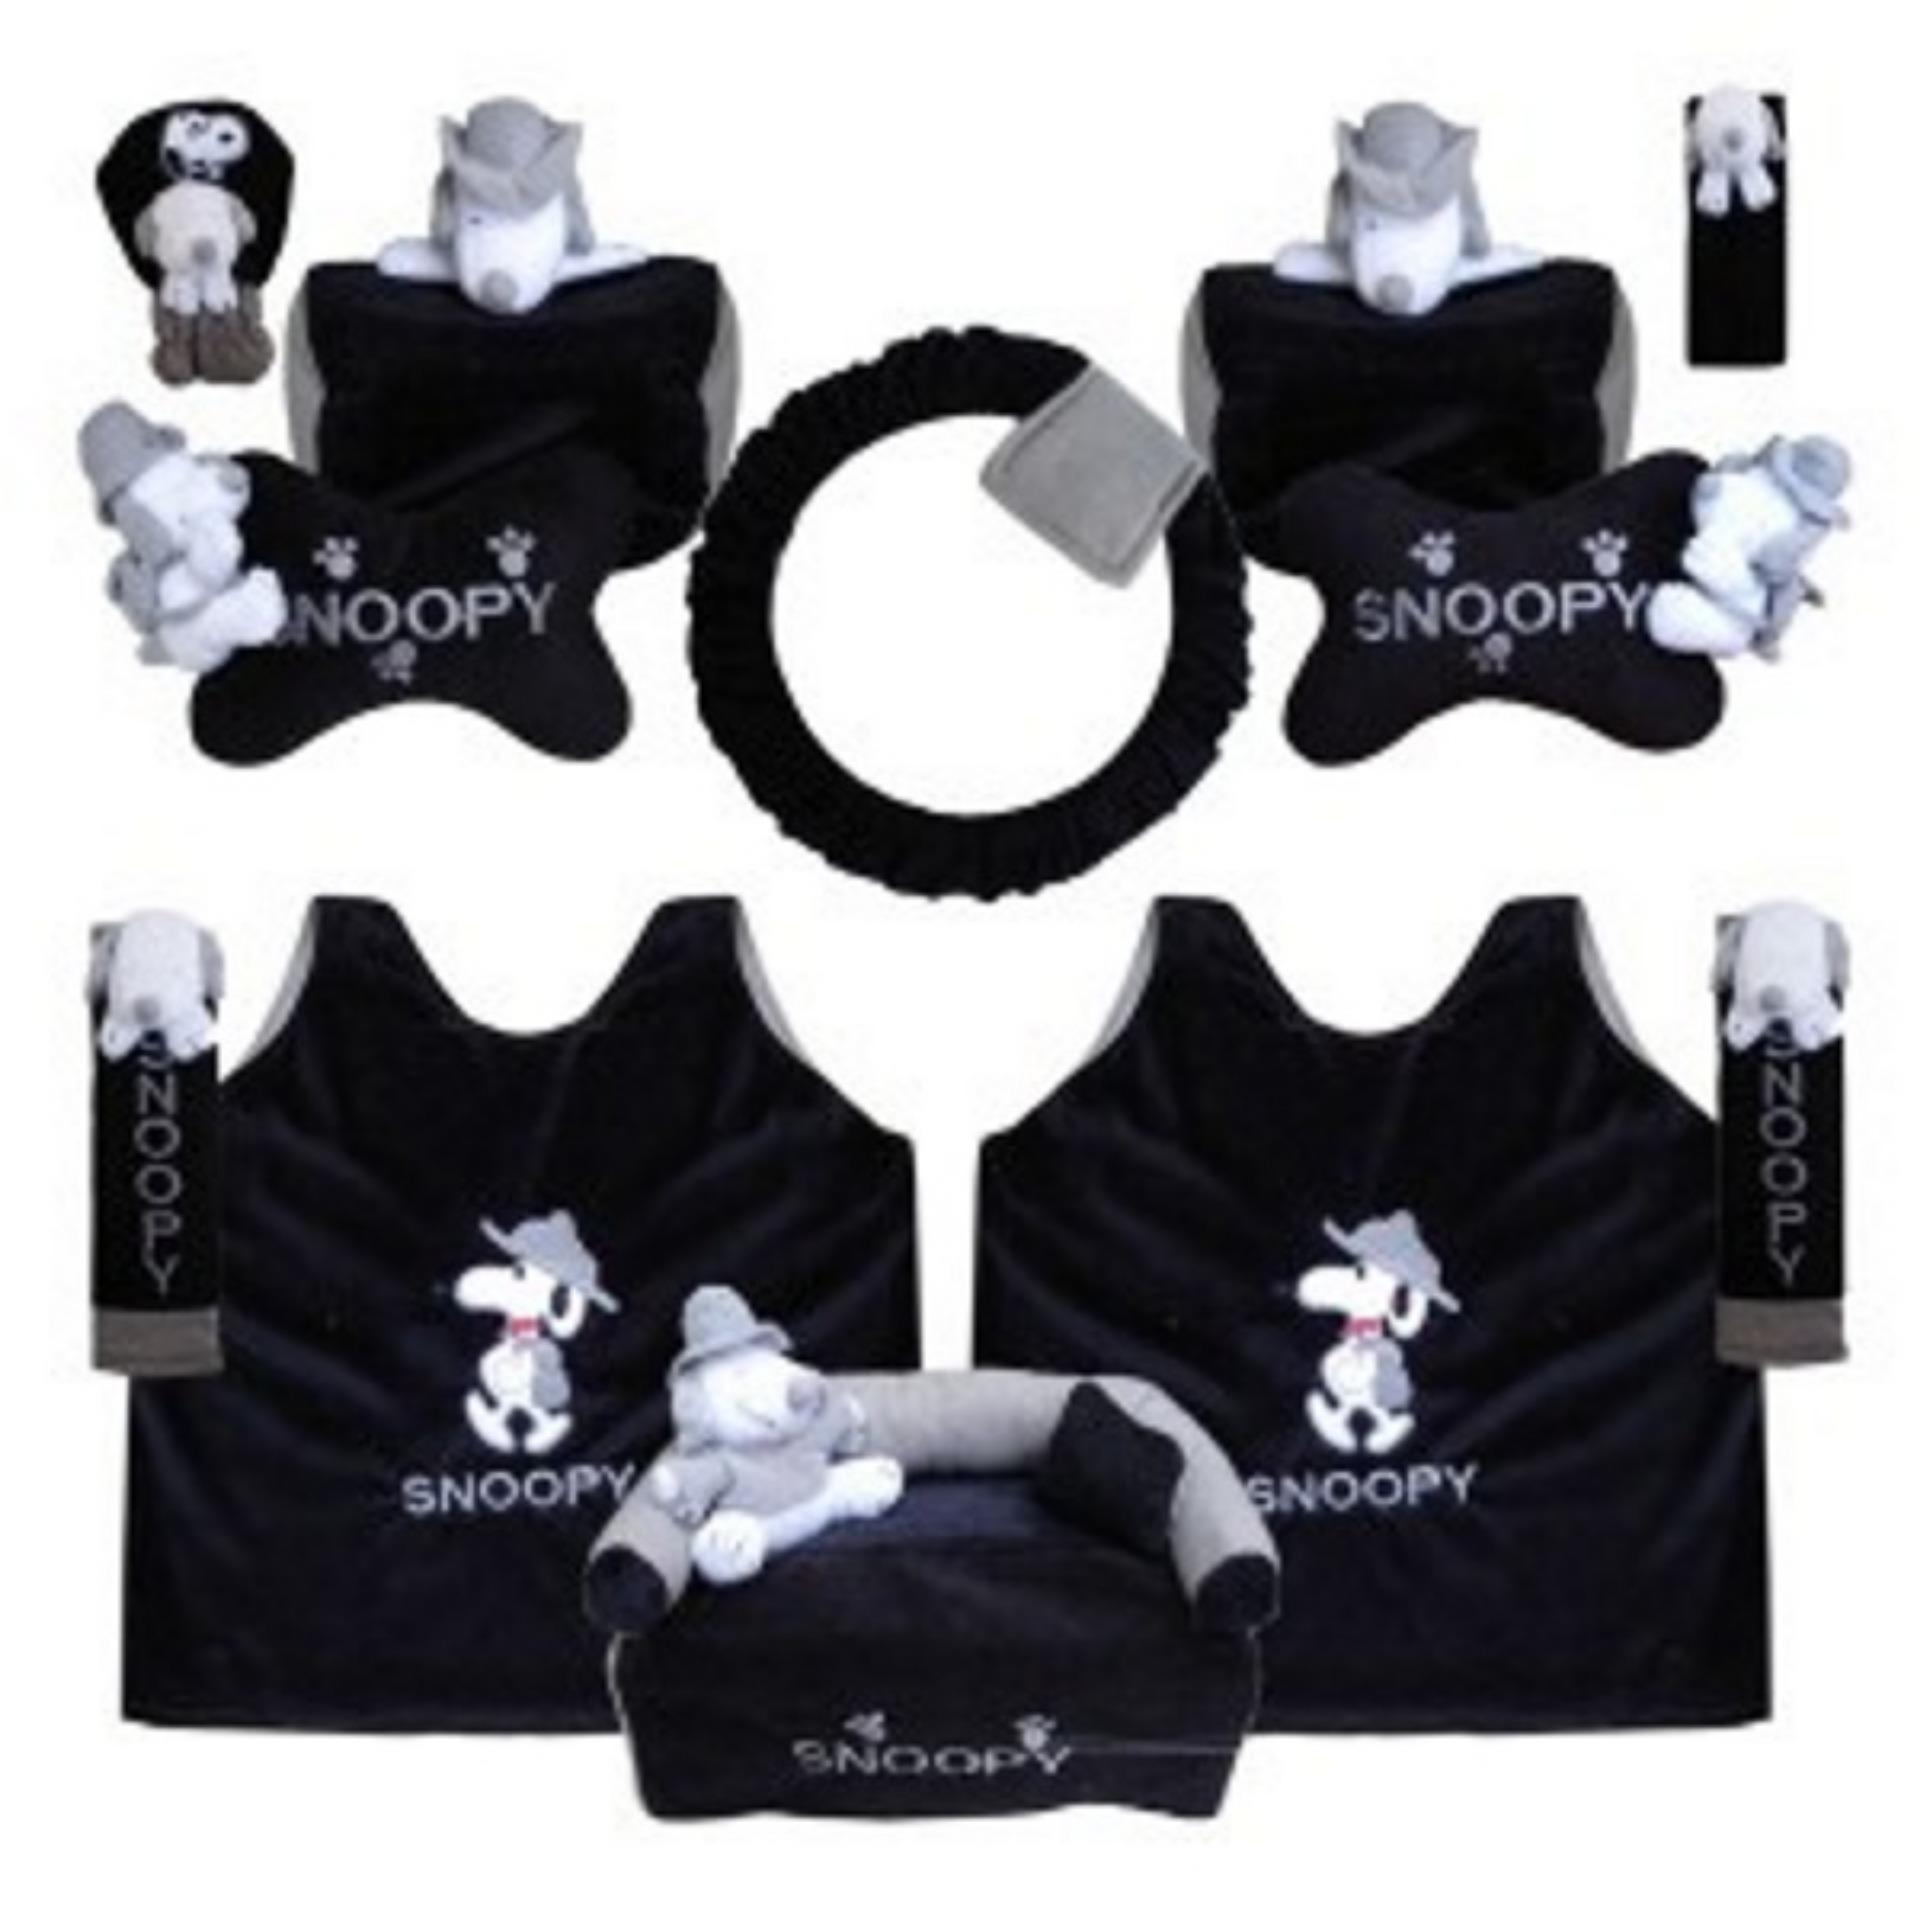 bantal mobil exclusive boneka 8 in 1 snoopy hitam